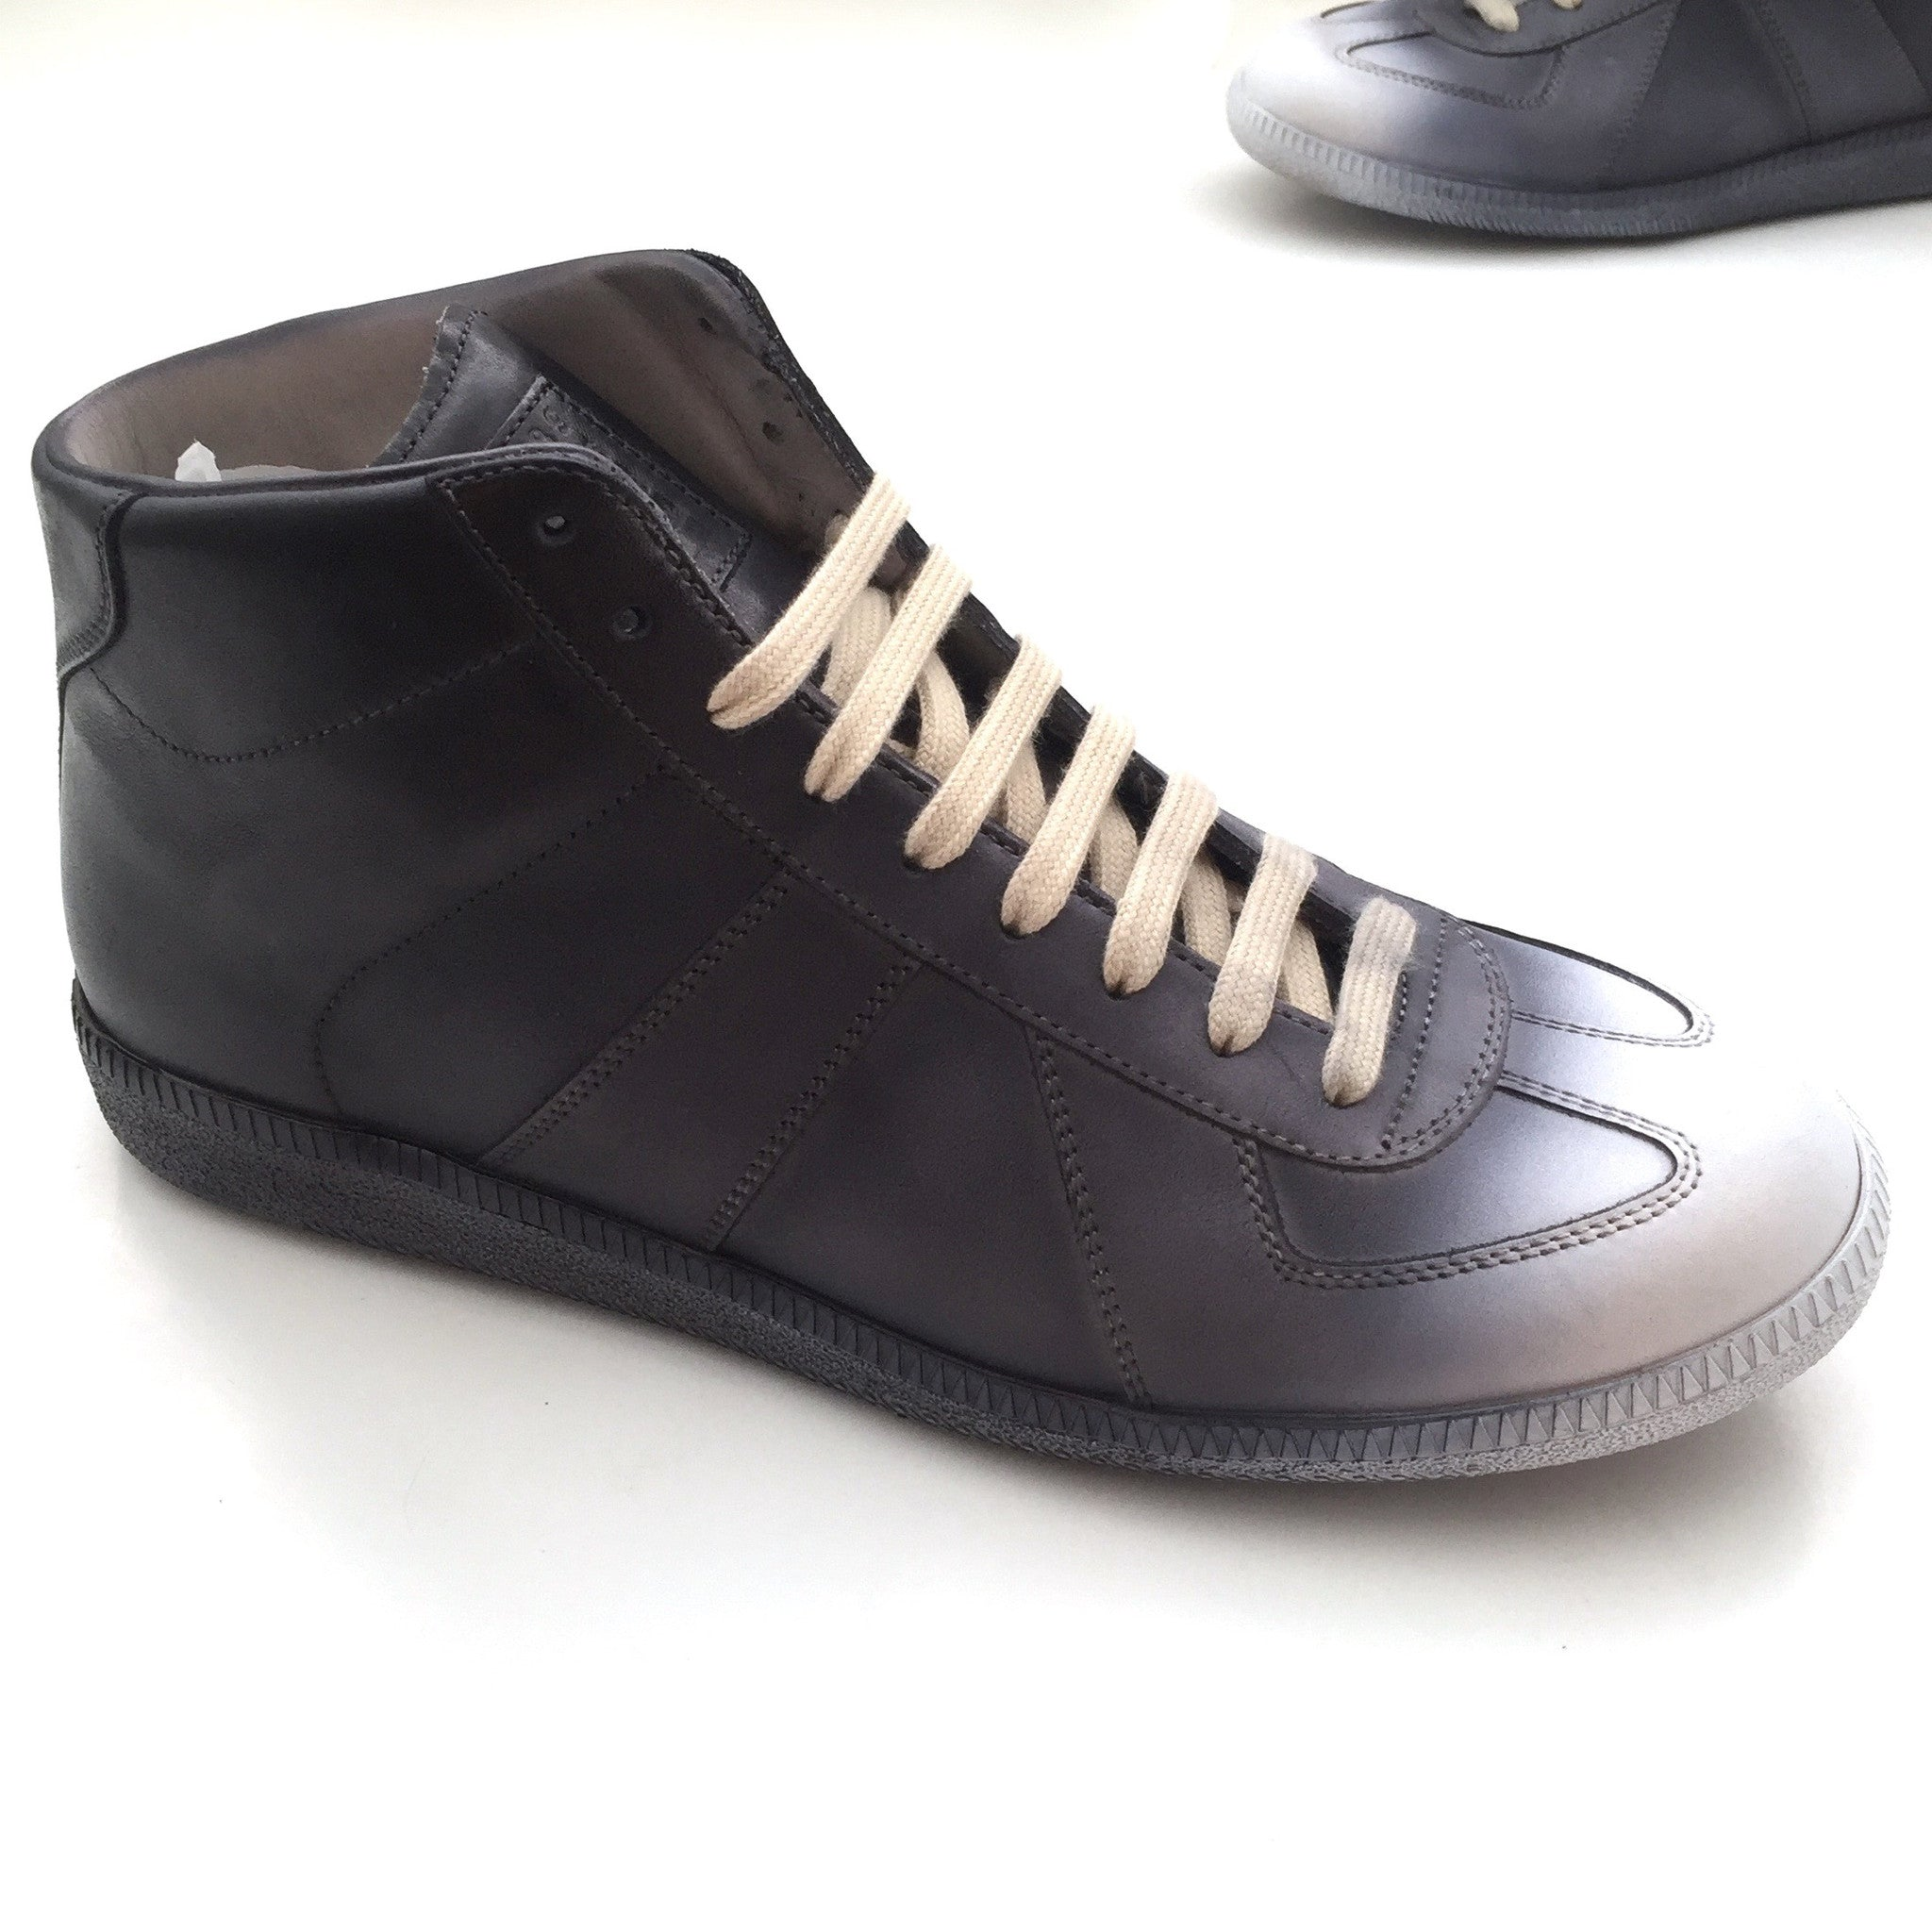 Maison Margiela - Black & White Degrade Sneakers